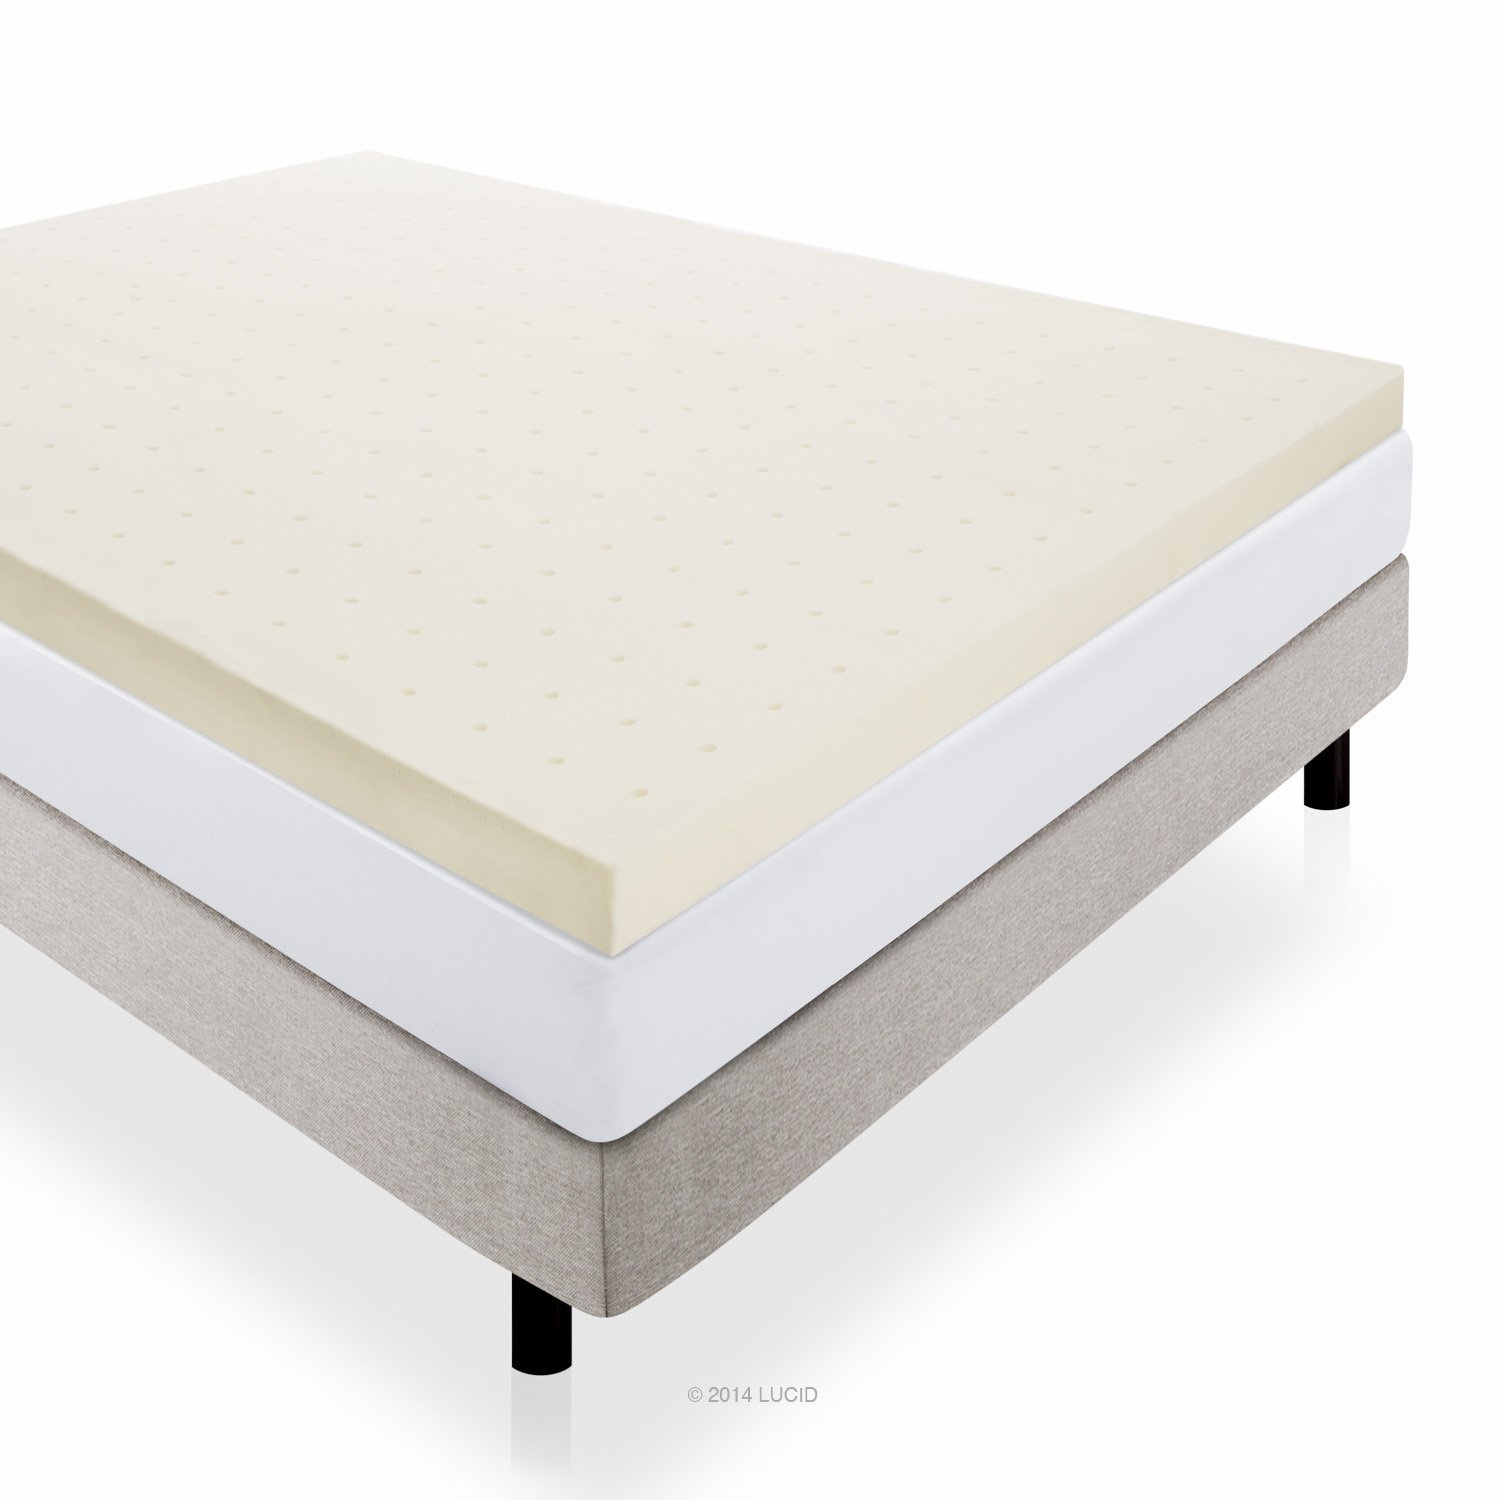 store naturepedic heart the series organic mattress deluxe soaring gimme latex cotton stuff reviews good crib quilted